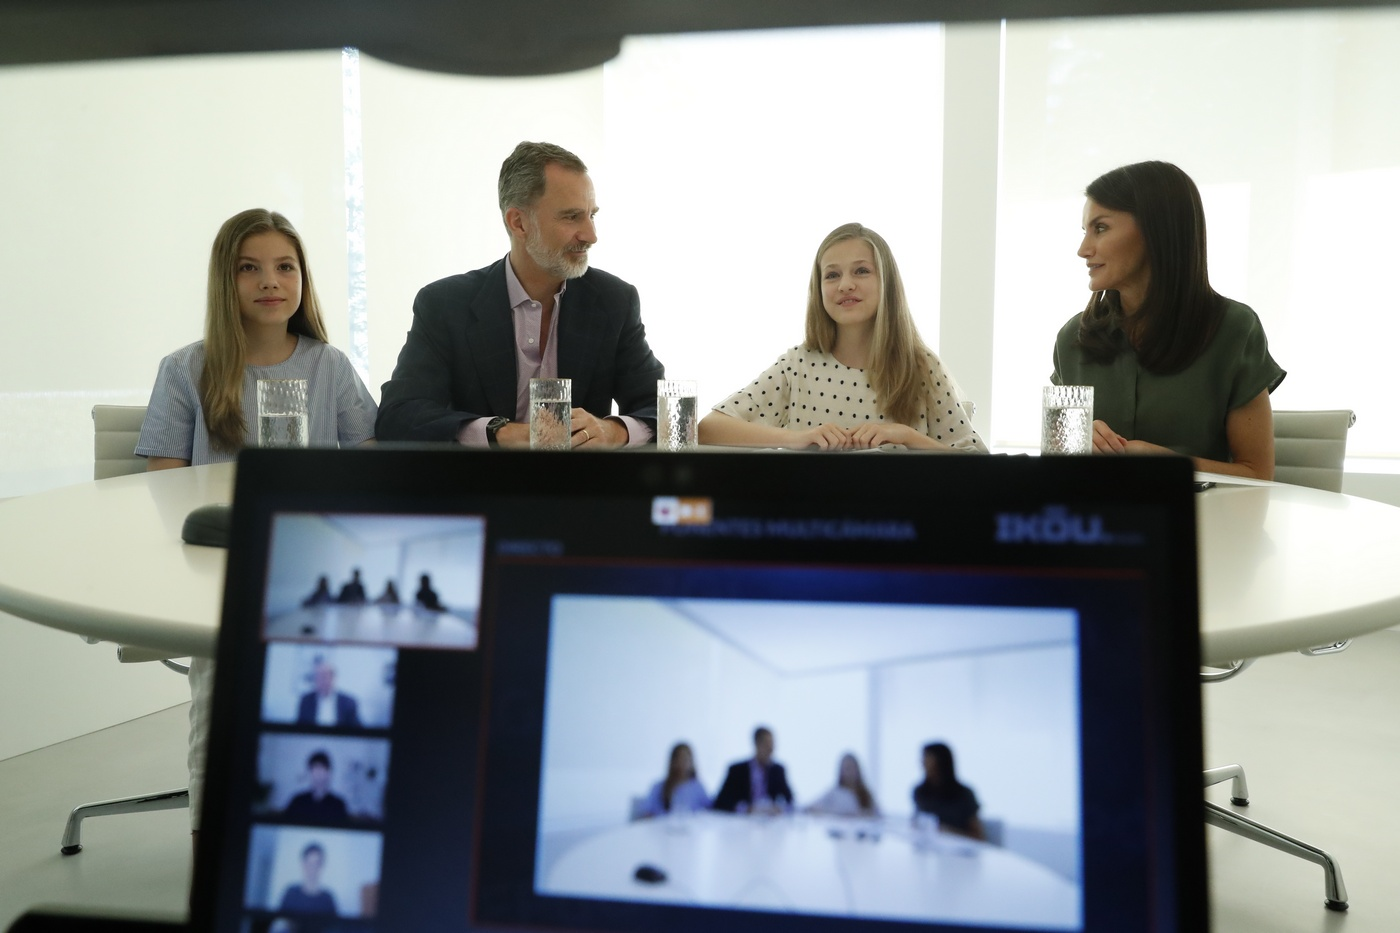 King Felipe, Queen Letizia, Princess Leonor and Infanta Sofía during the video conference with the FPdGi